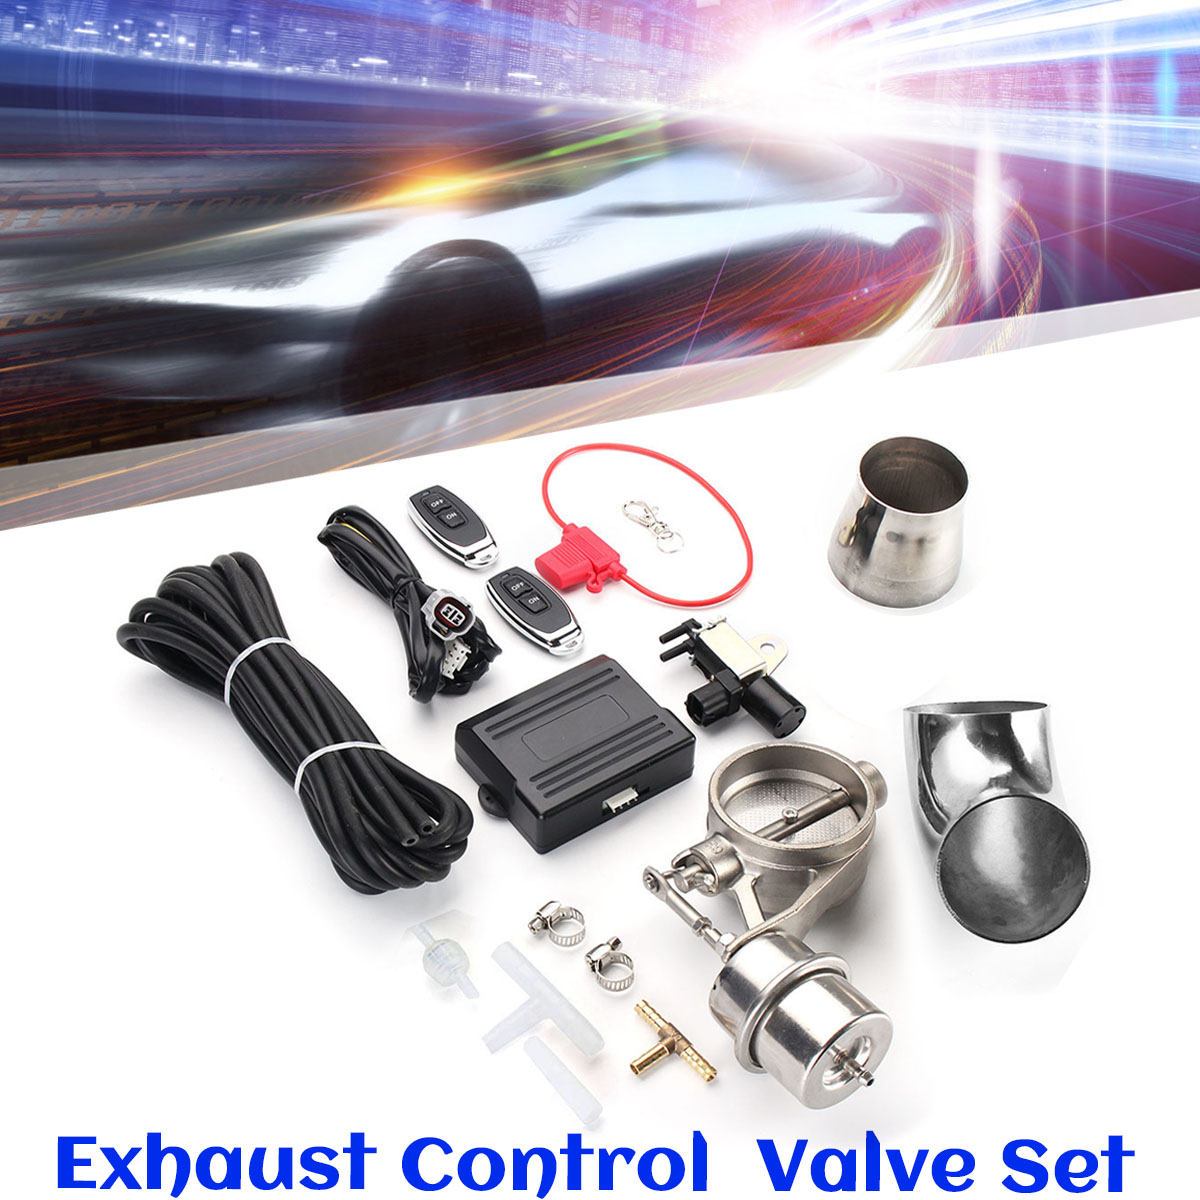 2.5 Inch 63mm Car Air Pipe Close Style Steel Exhaust Remote Control Valve Set With Vacuum Actuator